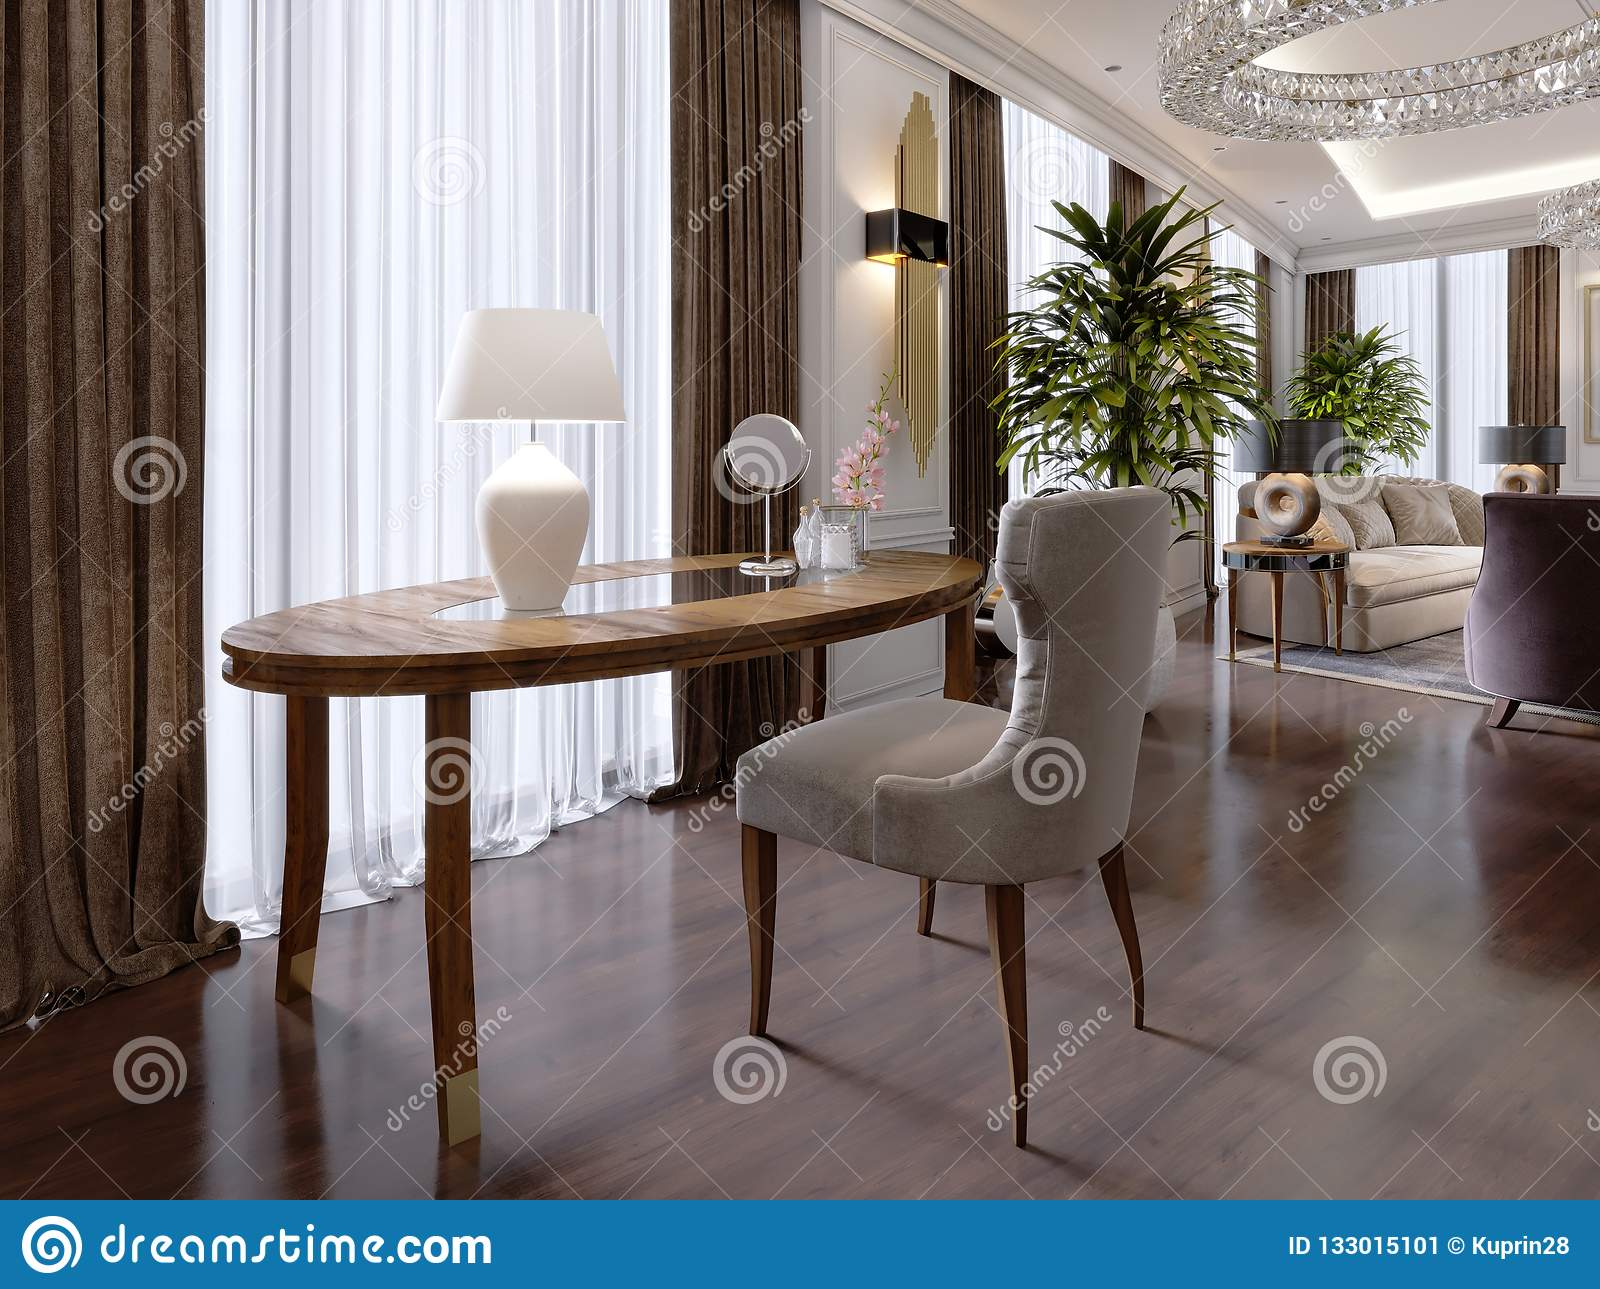 A Modern Dressing Table In A Classic Style With A Soft Quilted Chair And A Bedside Table With A Bag In A Luxury Apartment Stock Illustration Illustration Of Drawer Apartment 133015101